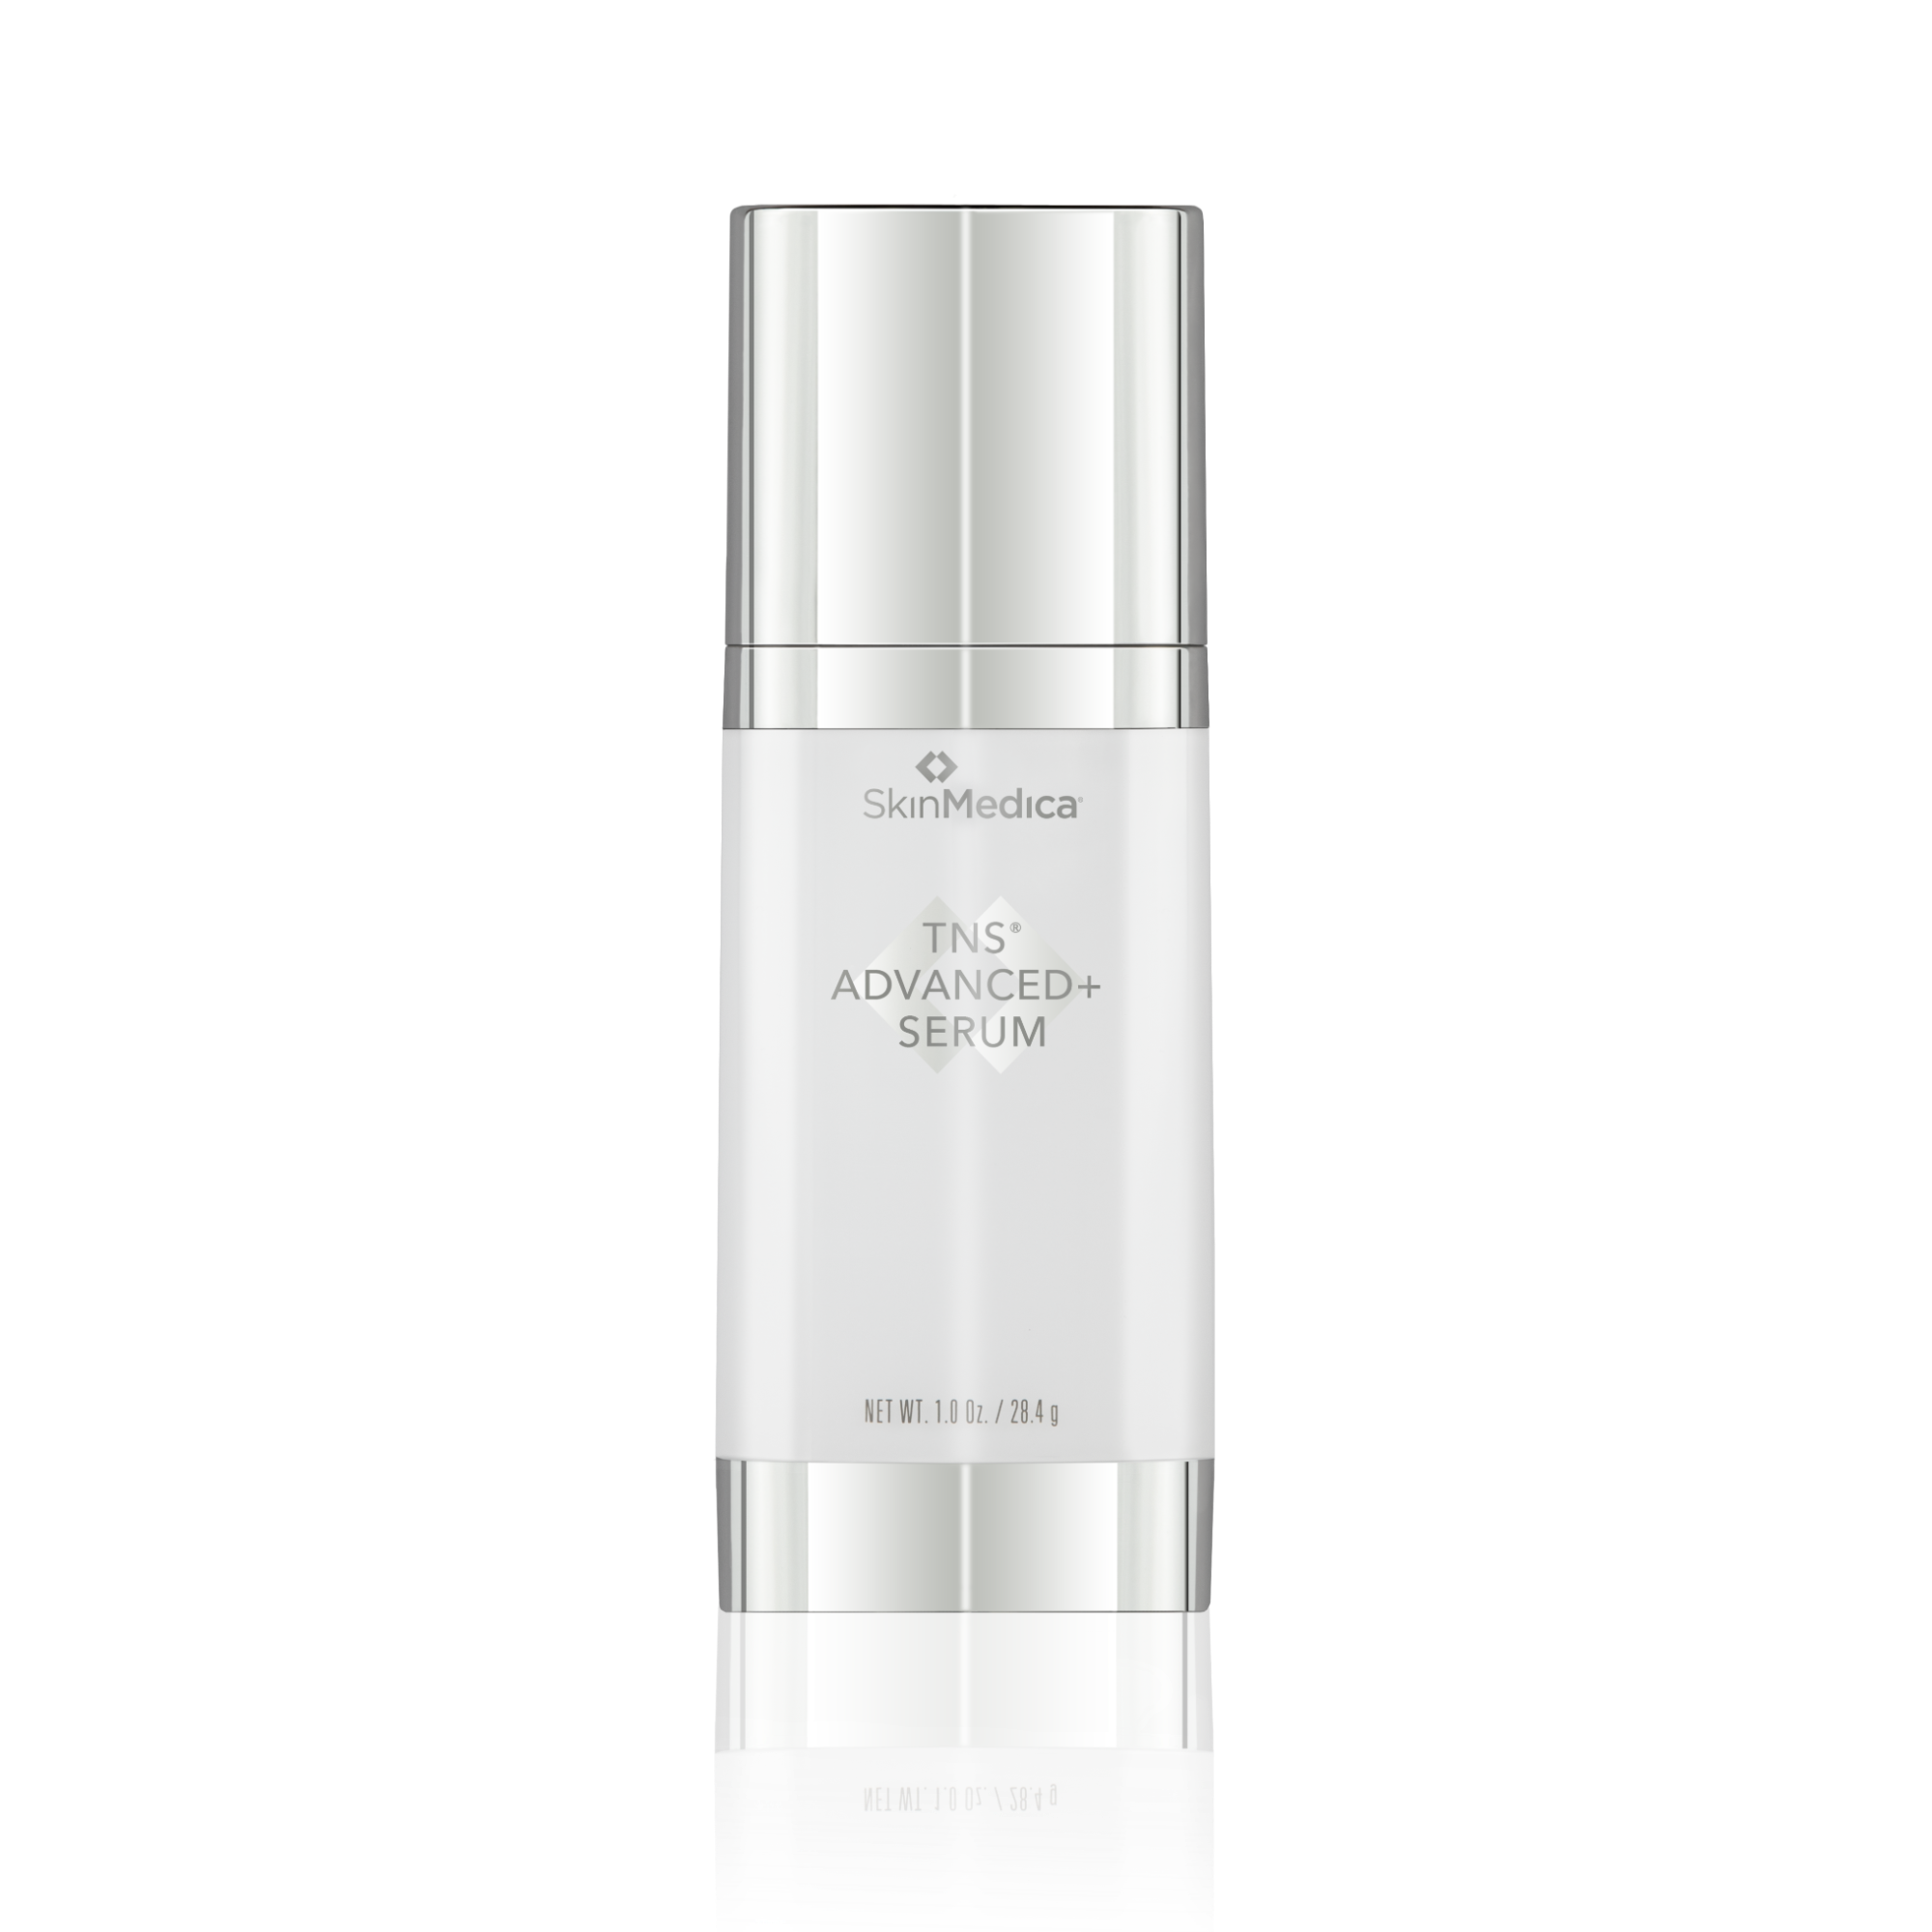 TNS Advanced + Serum by SkinMedica